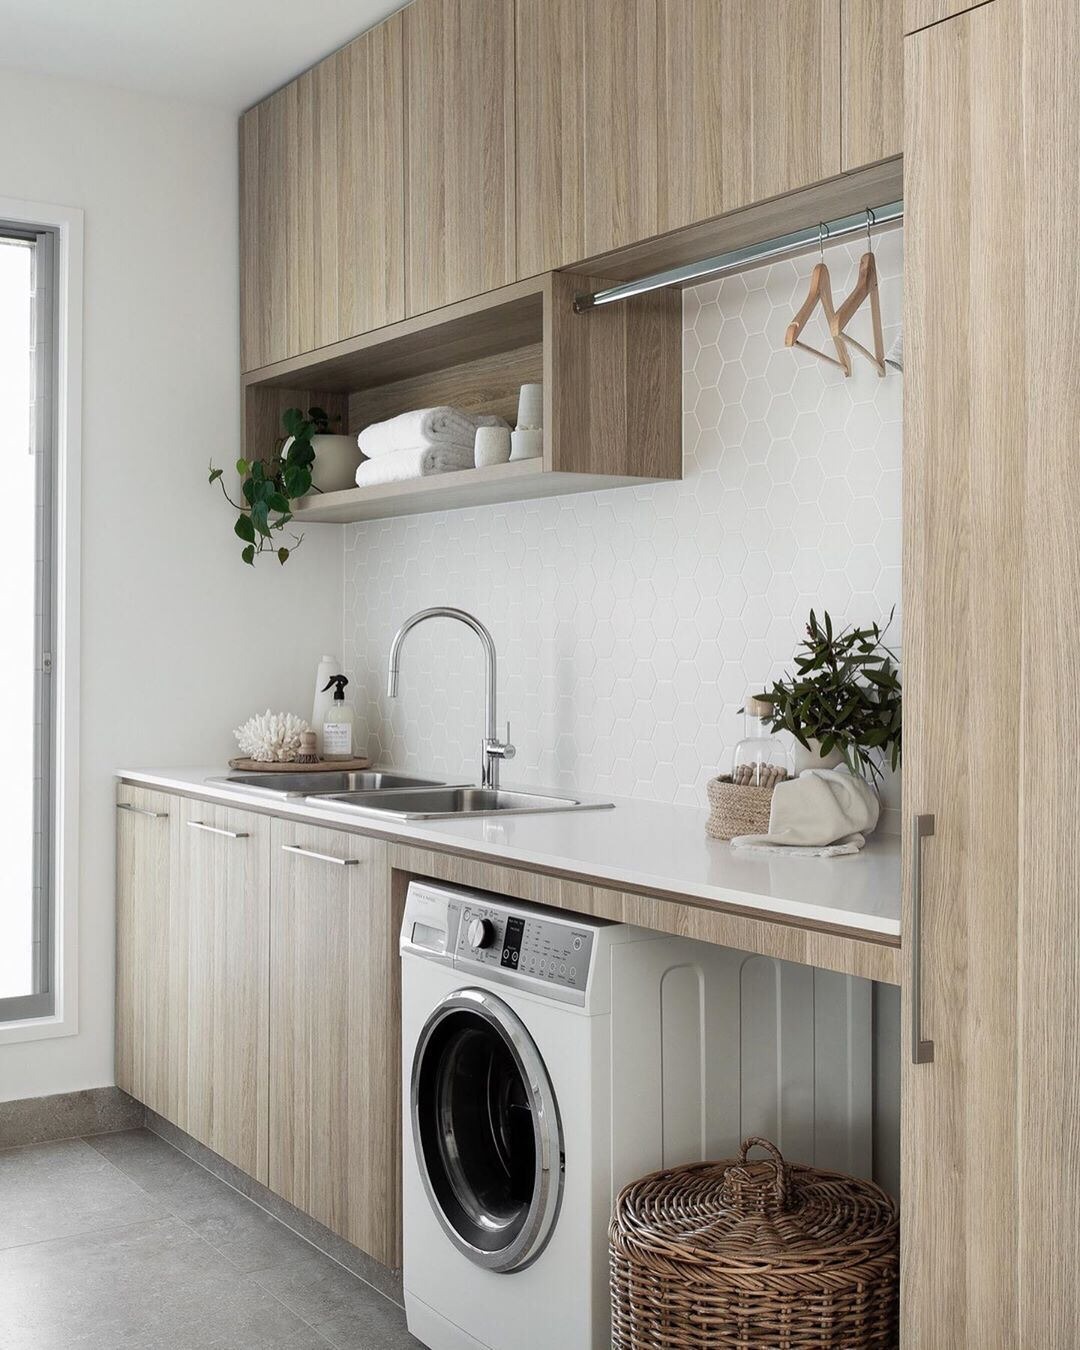 Design Styling Reno Tips On Instagram Z S Tip Designing A Gamechanger Laundry Laundry Room Design Modern Laundry Rooms Laundry